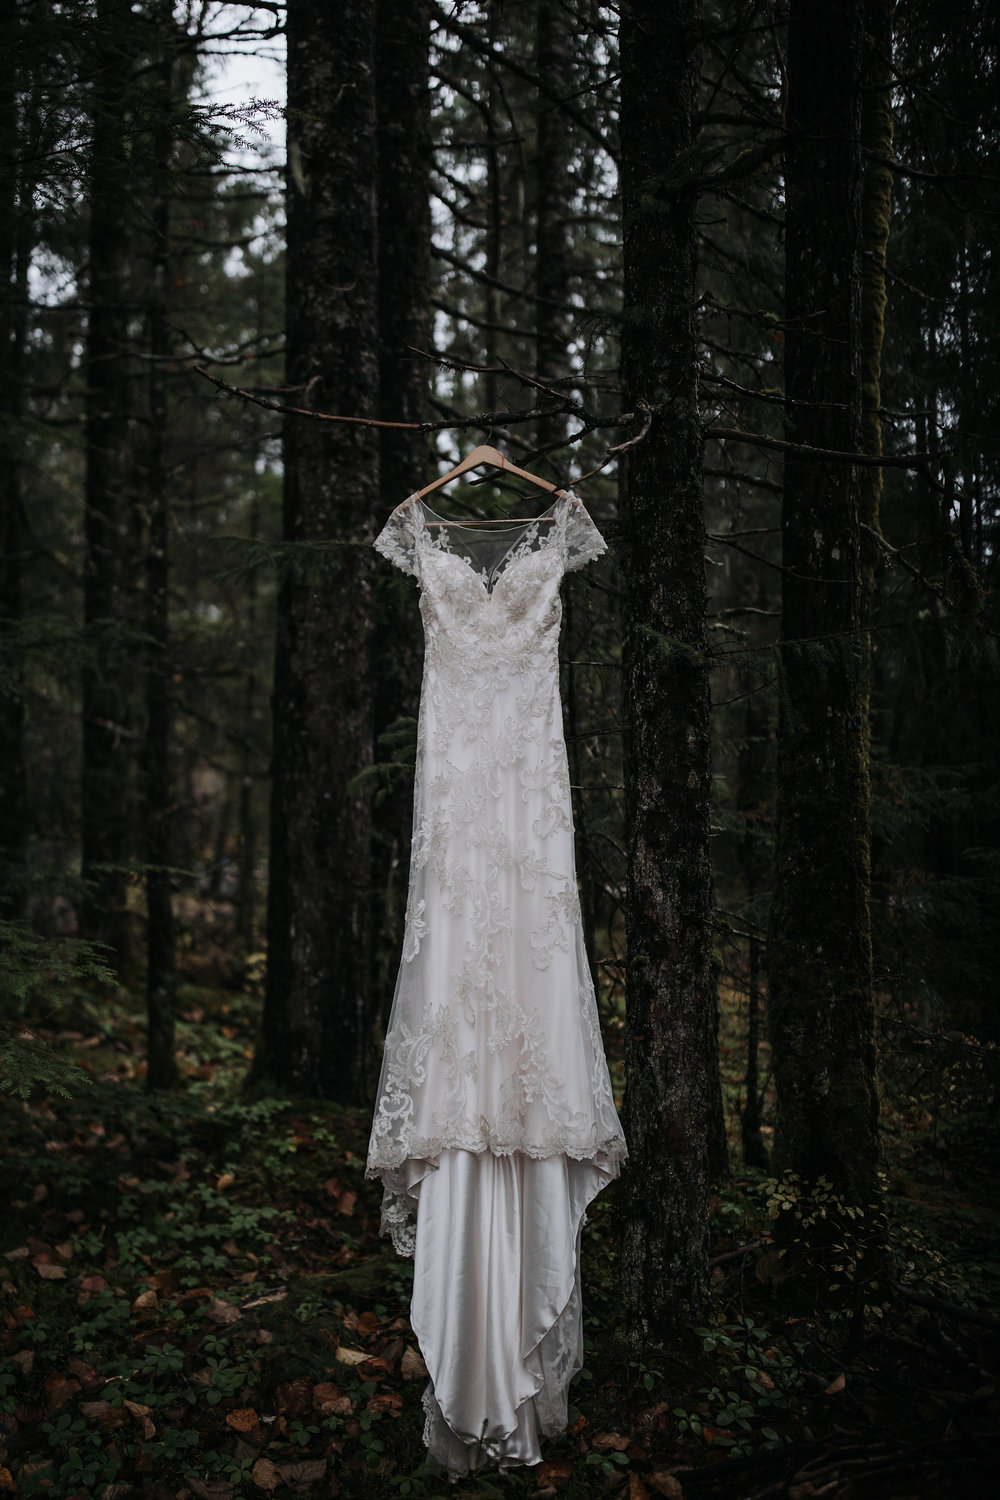 juneau_wedding_dress.jpg